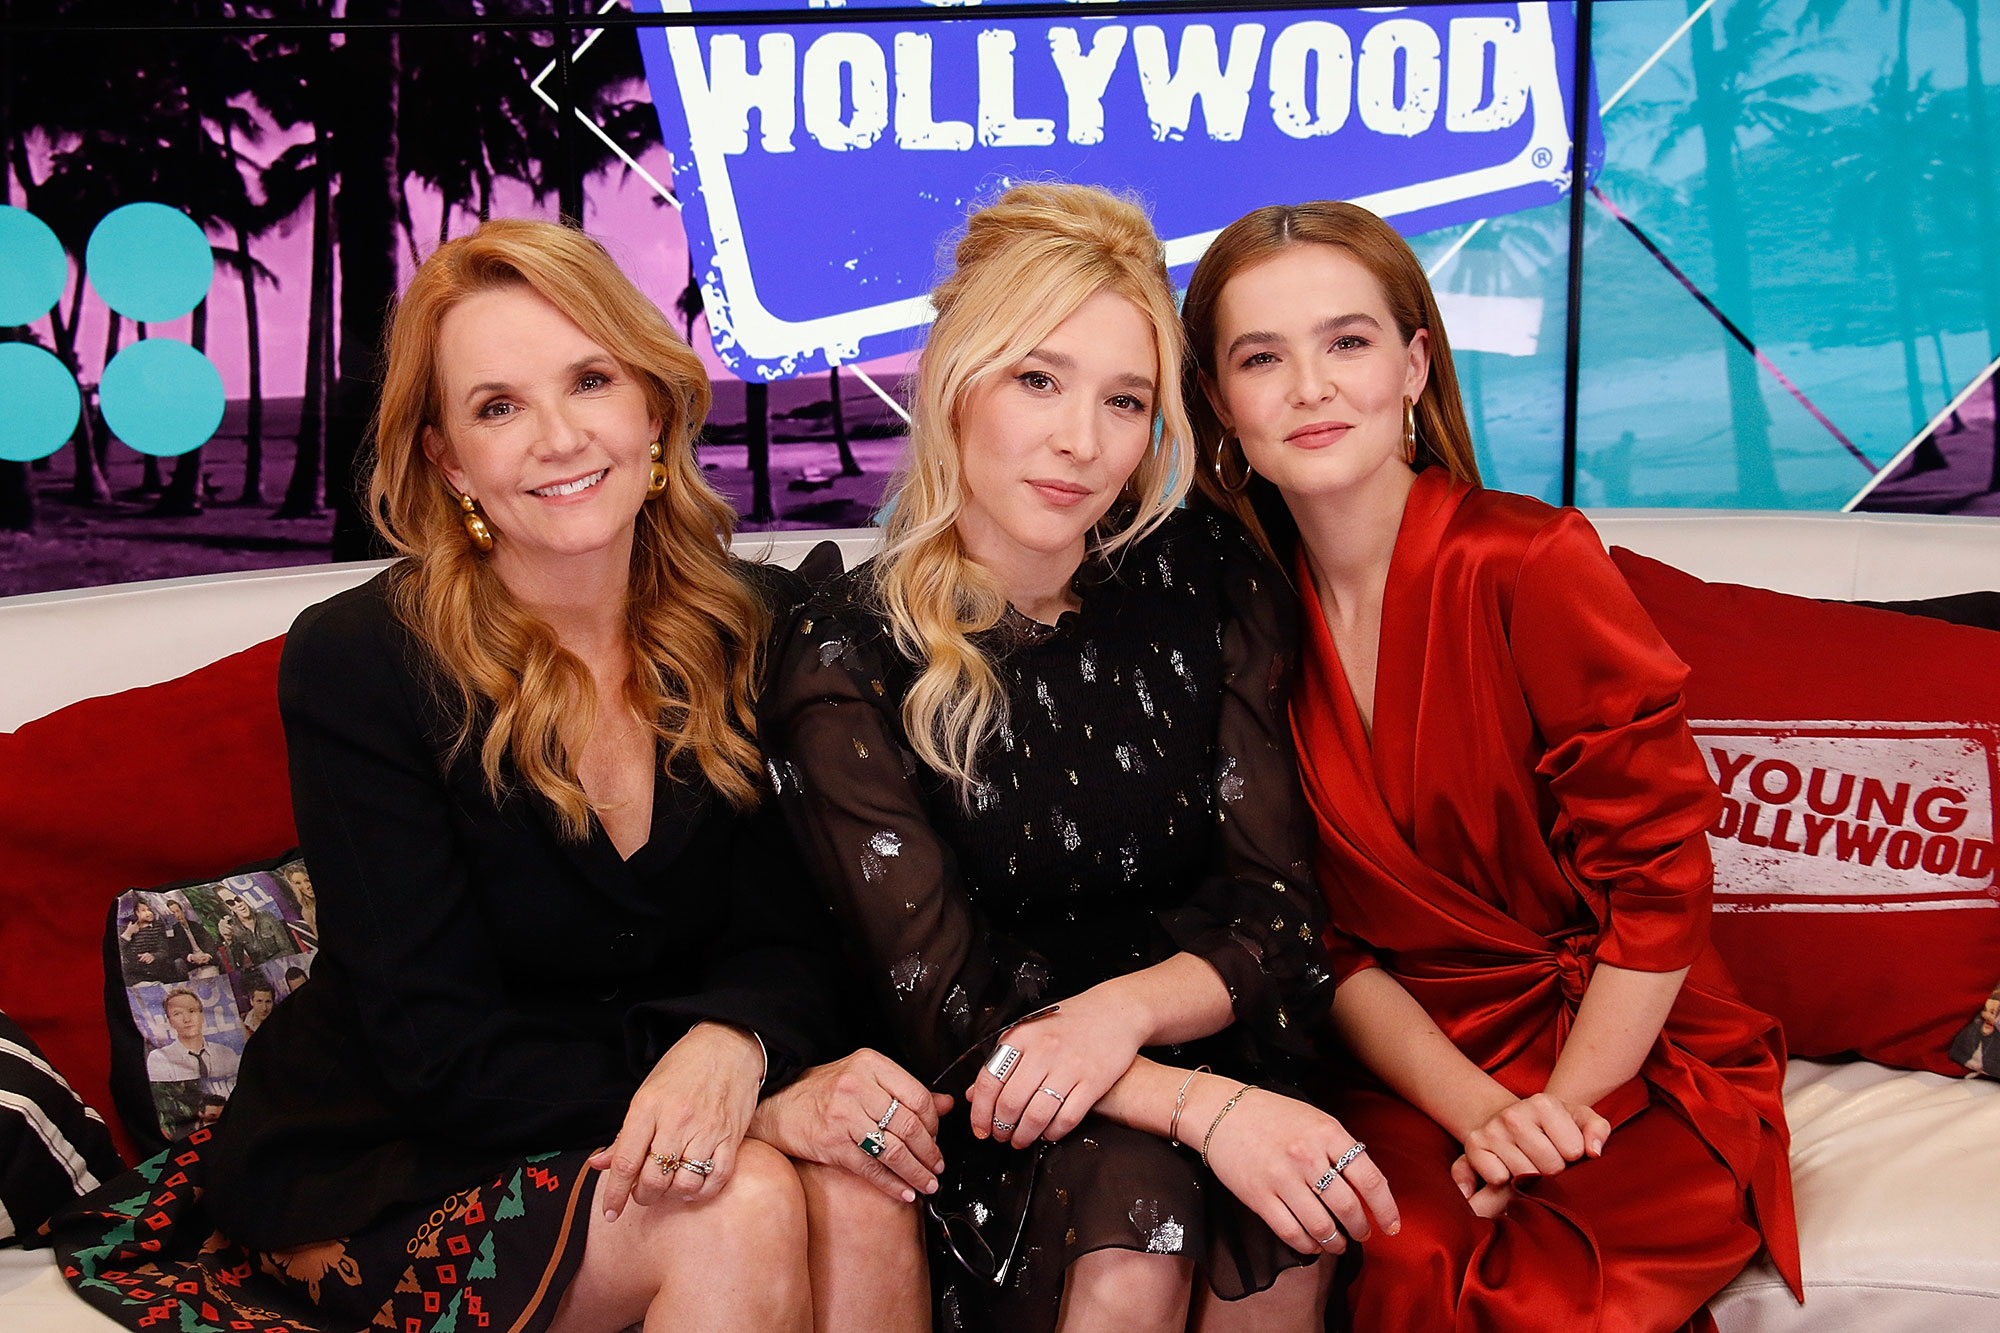 Lea Thompson, Madelyn Deutch and Zoey Deutch - Lea Thompson, Madelyn Deutch and Zoey Deutch visits the Young Hollywood Studio on June 6, 2017 in Los Angeles, California.